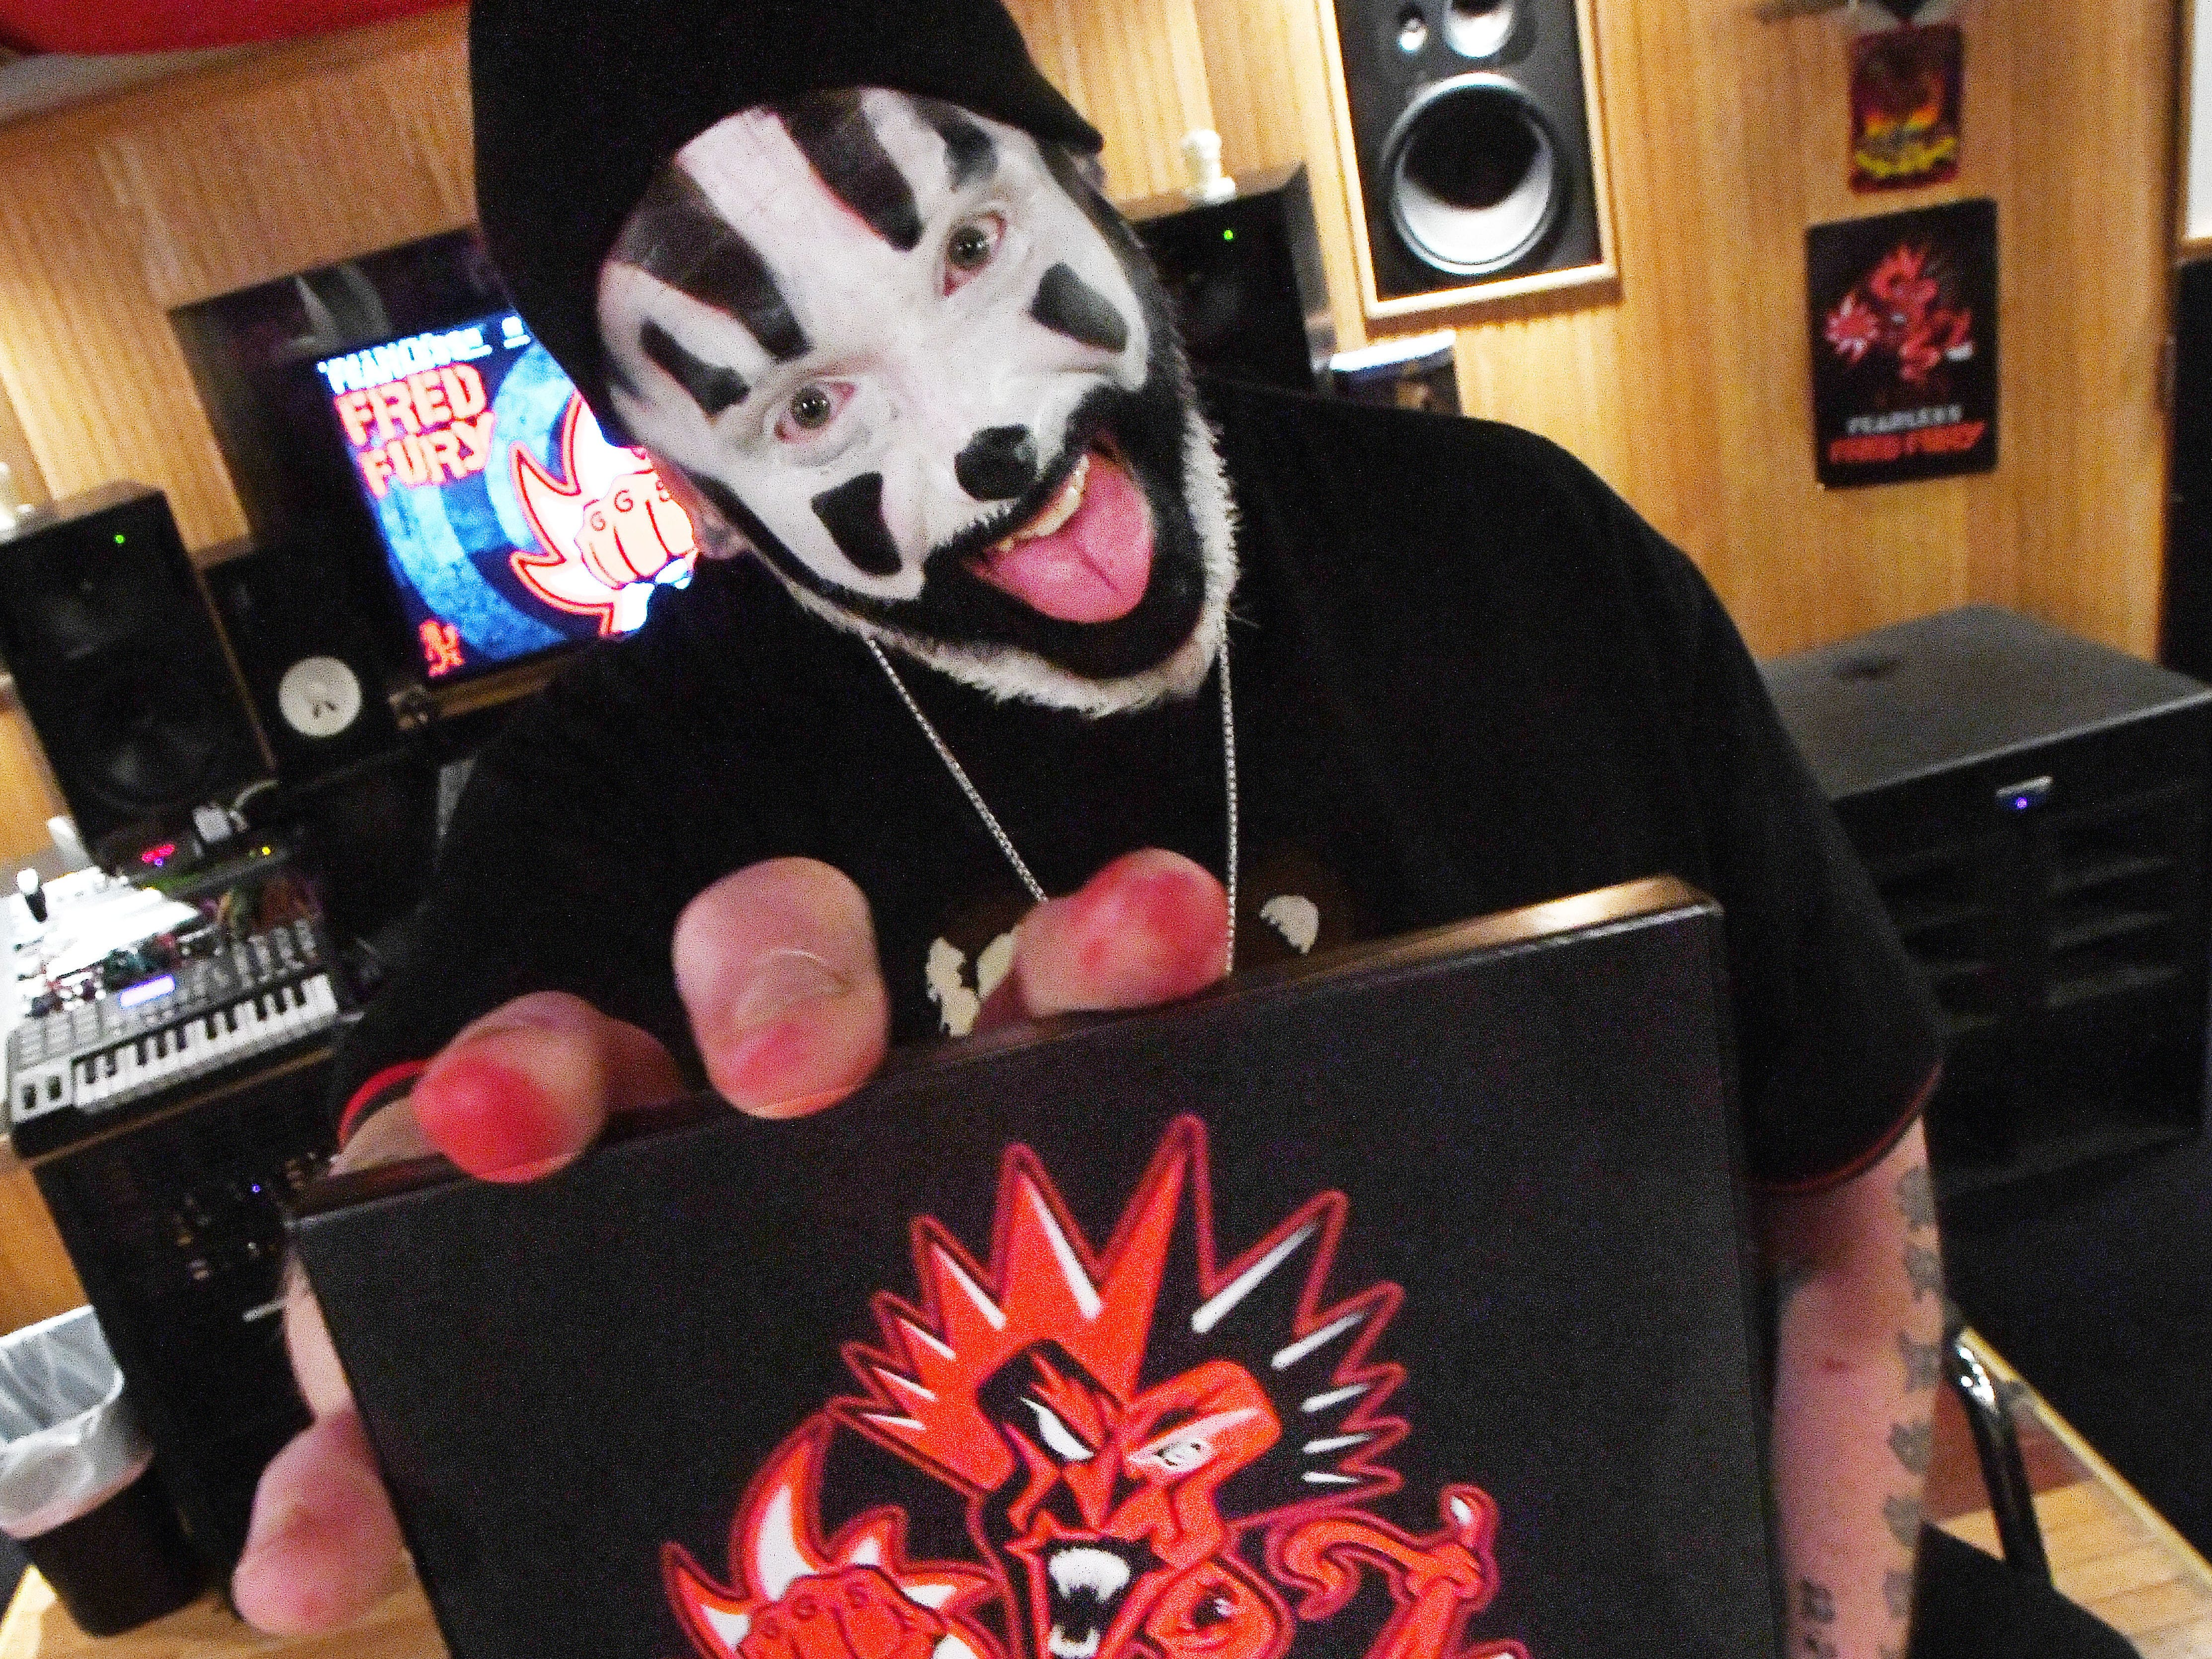 Violent J, aka Joseph Bruce of Insane Clown Posse, shows a copy of their upcoming new release, Fearless Fred Fury, in Farmington Hills, Michigan on Tuesday, Feb. 6, 2019.